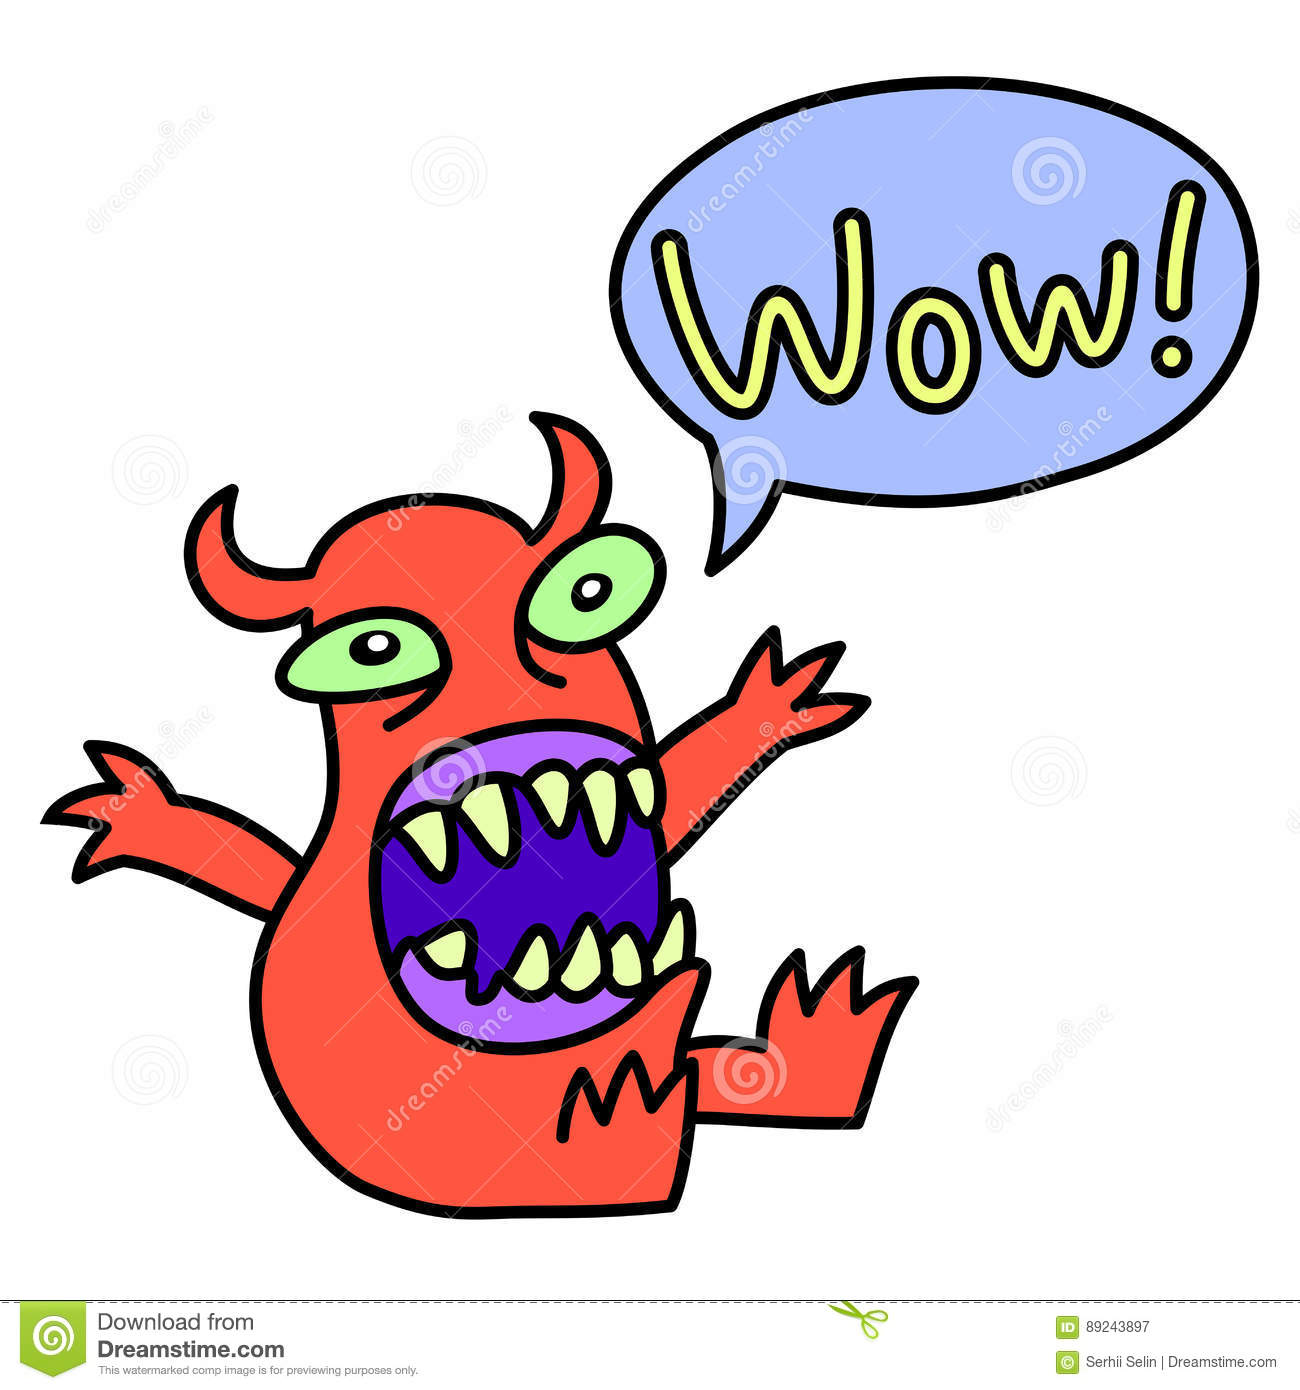 Download Wow Funny Cute Monster Screaming Speech Bubble Vector Illustration Stock Vector